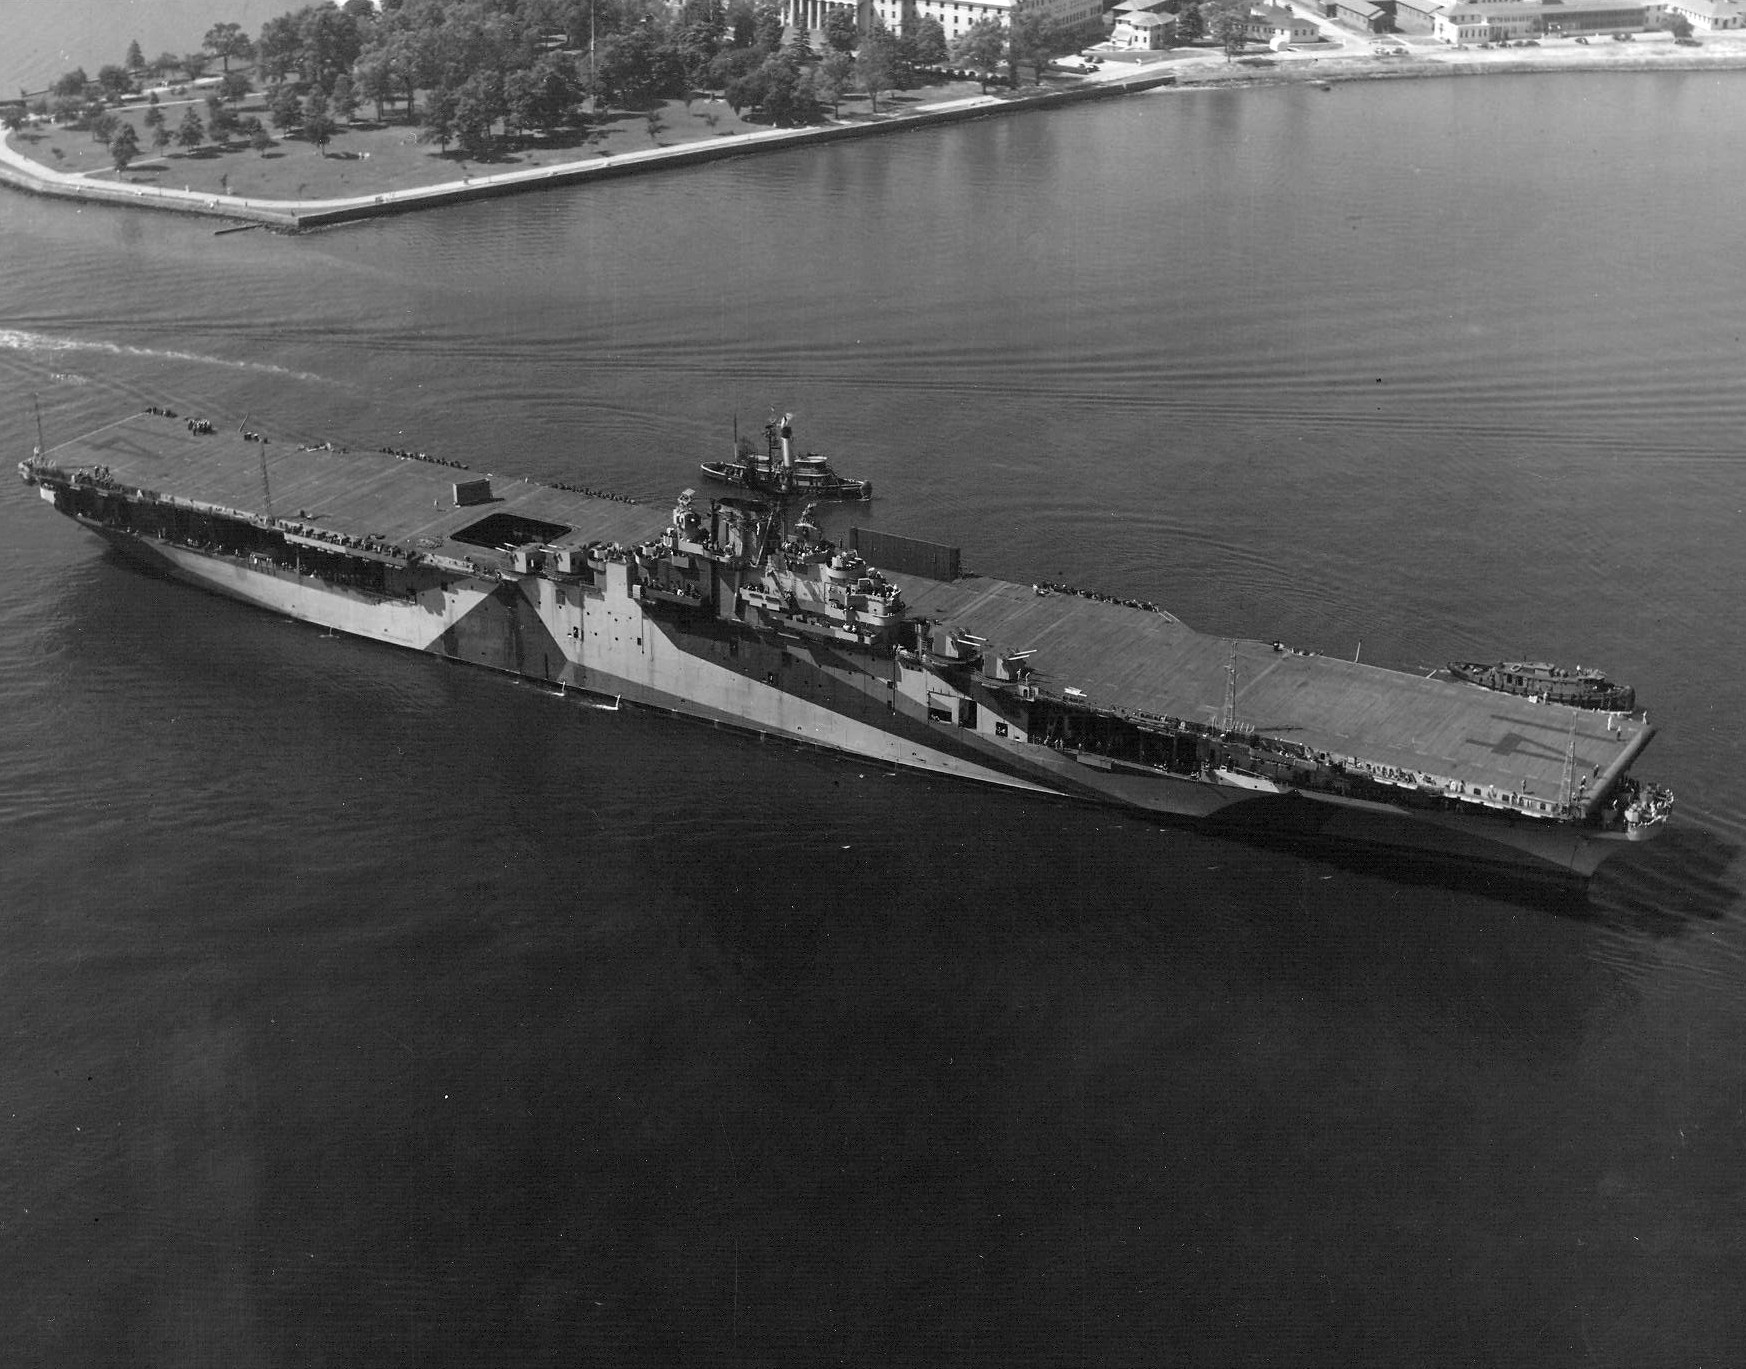 Mt Usn Otd In 1946 The Ticonderoga Cl Aircraft Carrier Uss Philippine